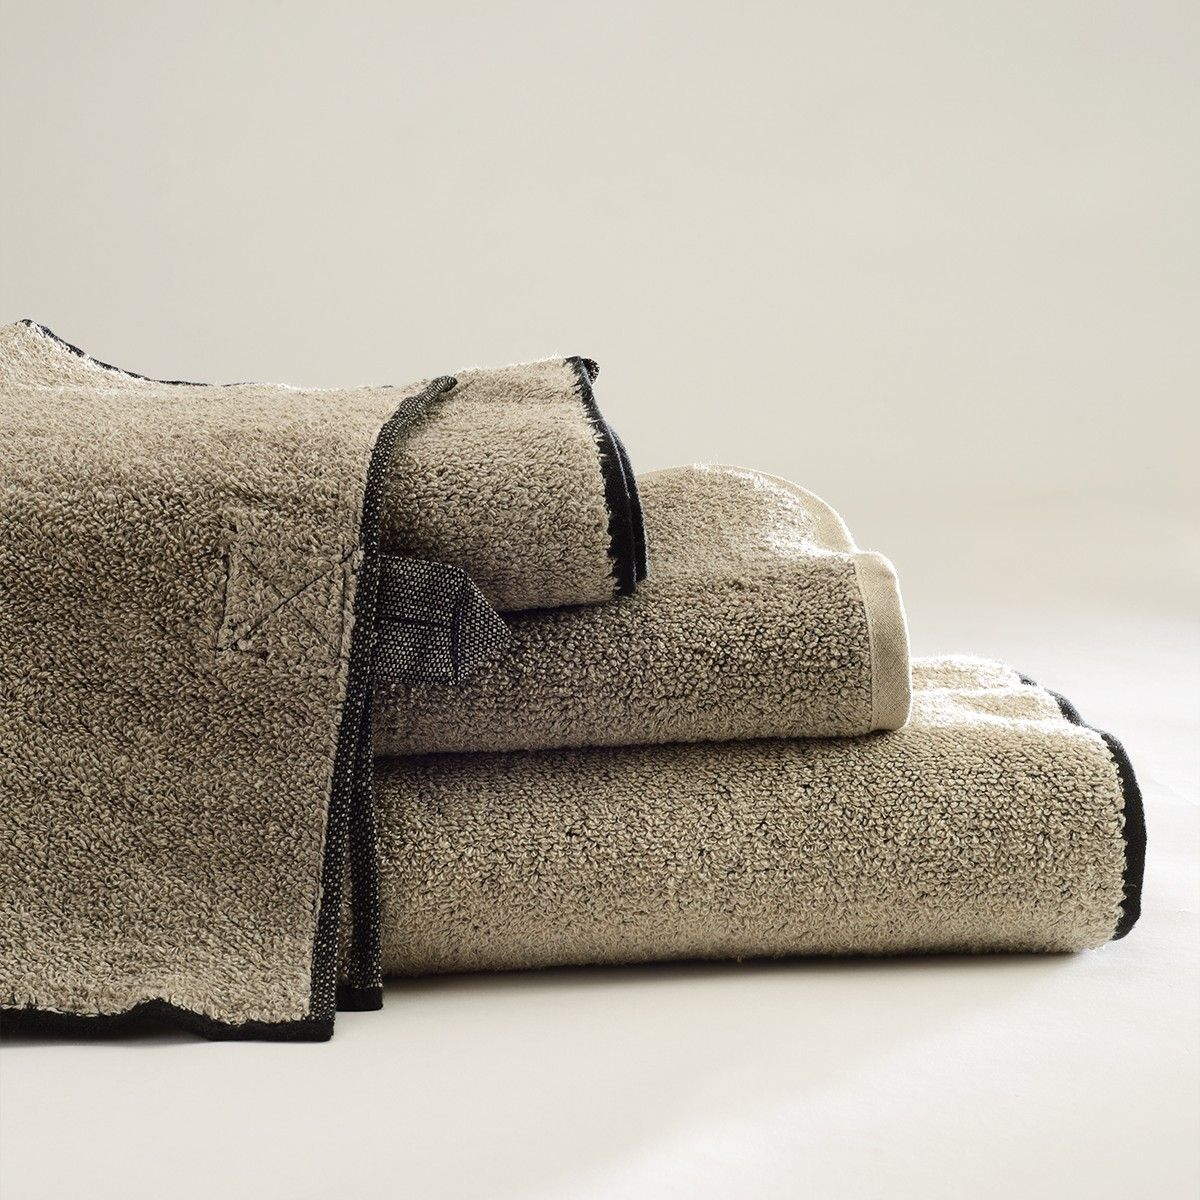 ANICHINI | Vilnius Solid Linen Terry Towels - The Ultimate, Eco-Friendly Towel